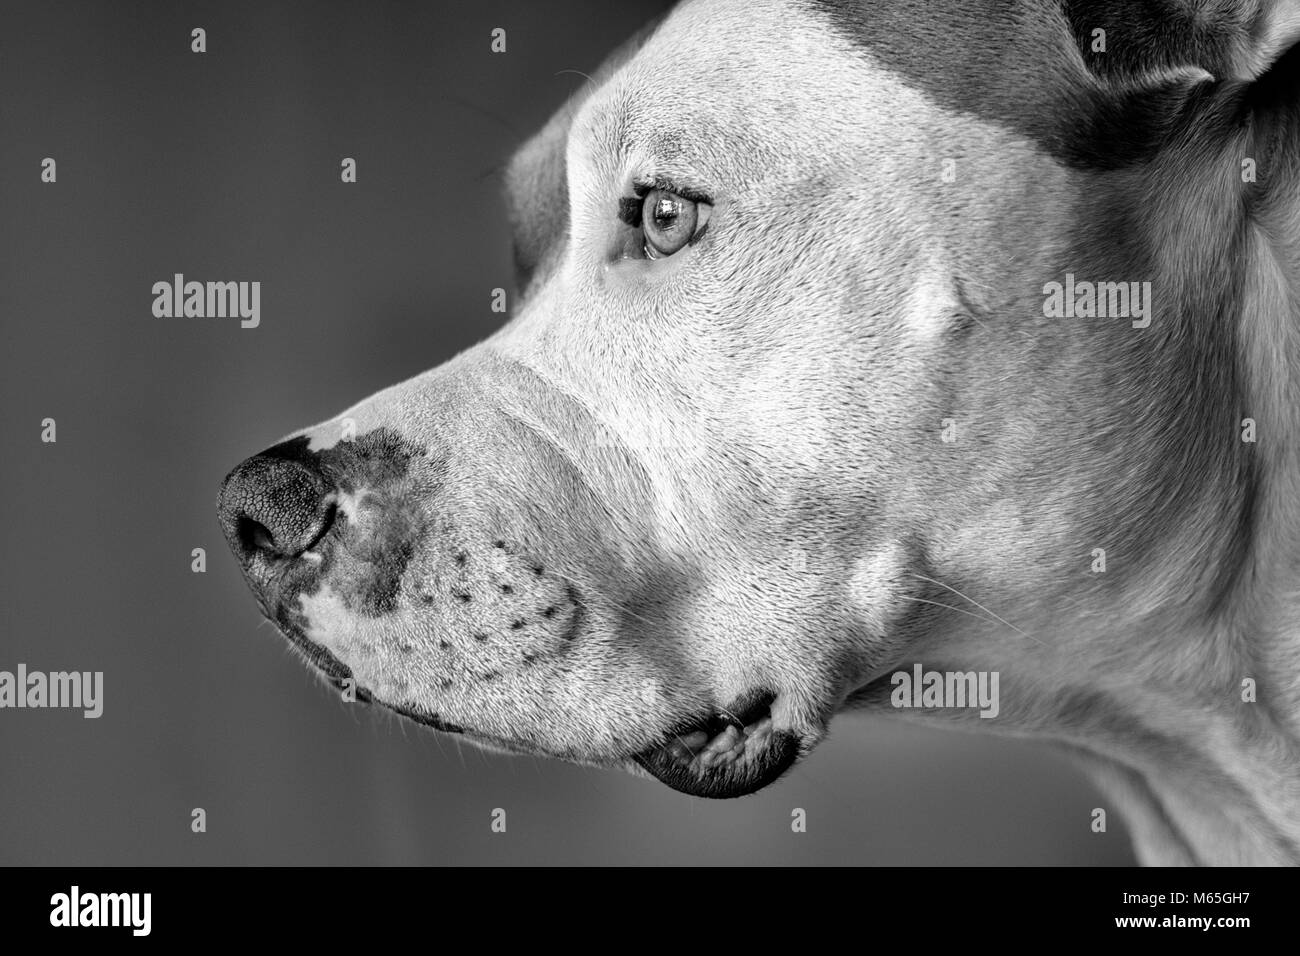 Profile of an American Pit Bull Terrier (Canis lupus familiaris) close-up - Stock Image